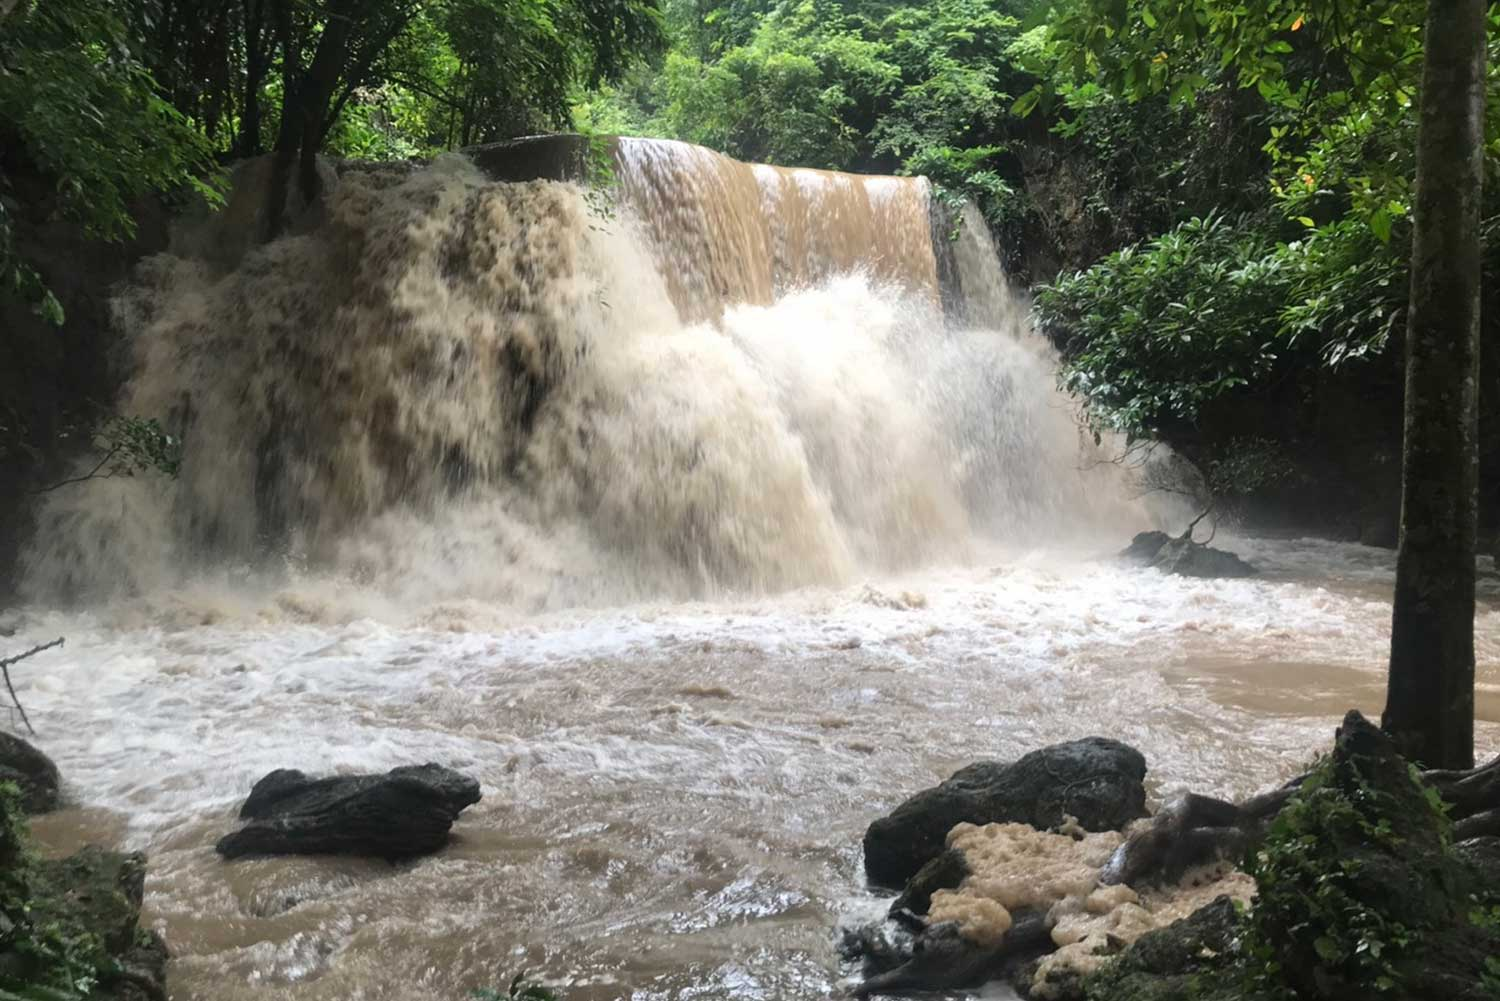 Huay Mae Khamin waterfall in Sri Sawat district of Kanchanaburi remains open to visitors but off-limits for swimming because of heavy runoff. (Photo by Piyarat Chongcharoen)